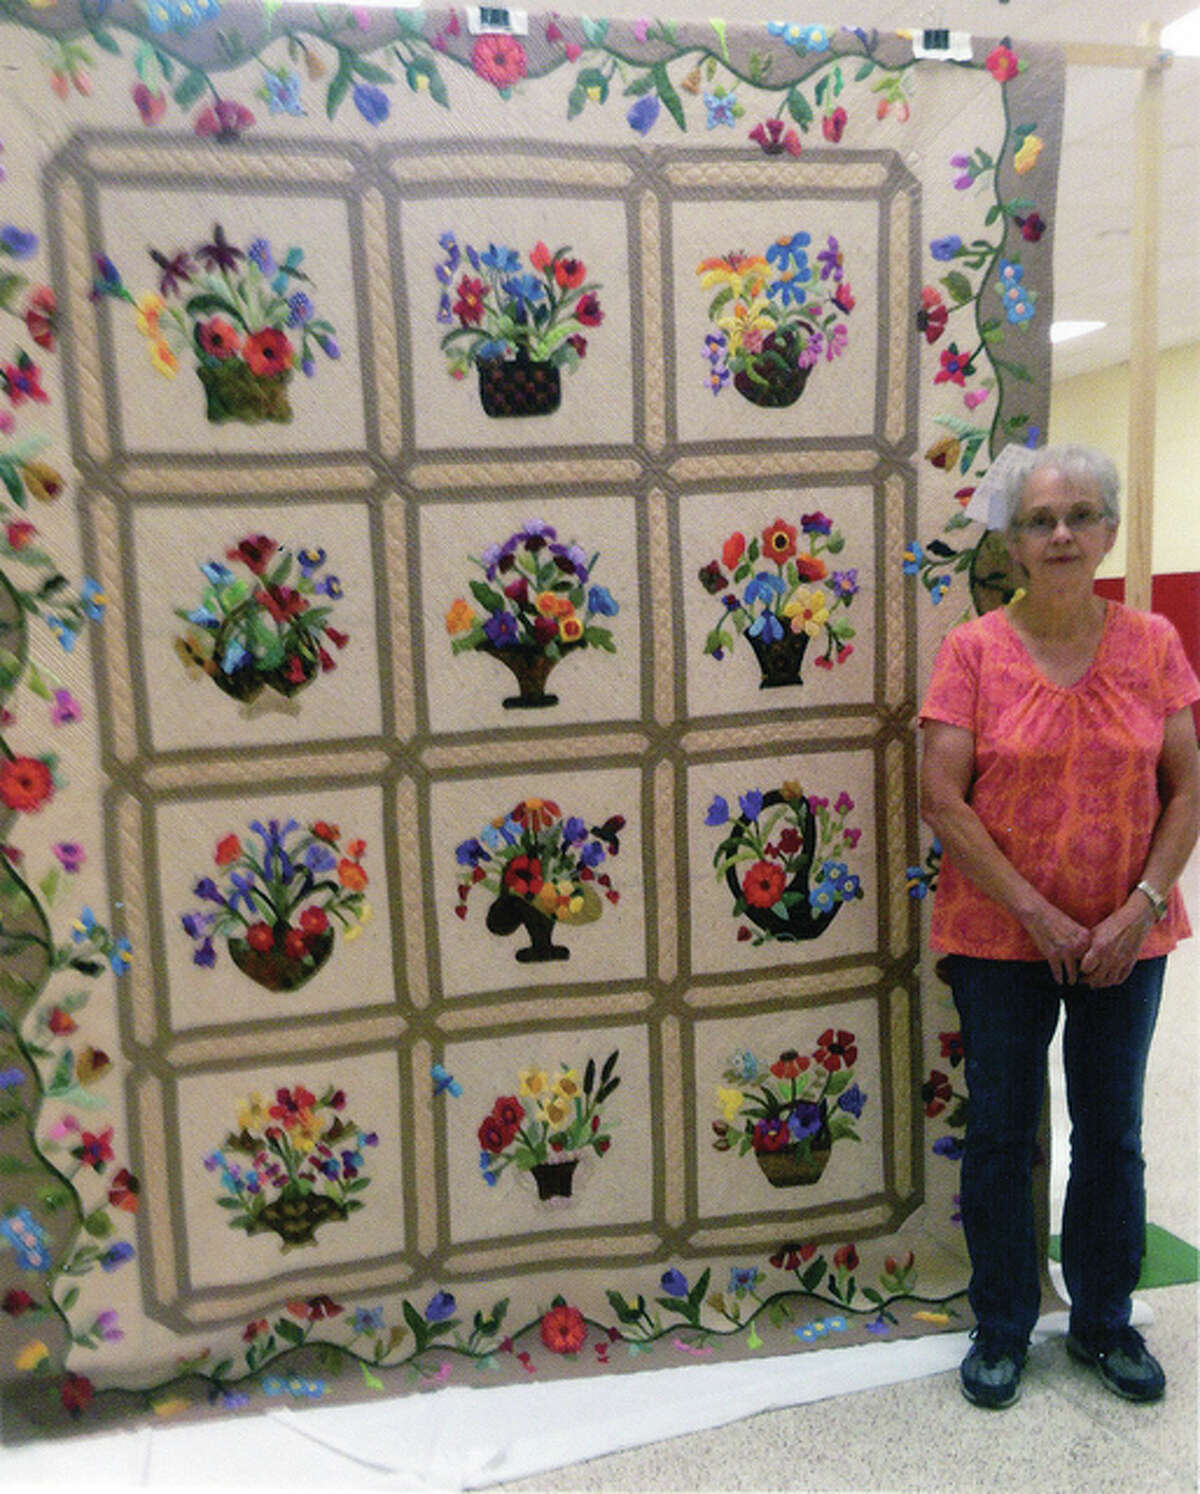 """Photo provided The Viewers' Choice Award for a quilt at the River Country Quilt Show went to Bonnie Meyers of Palmyra, Missouri. The quilt, titled """"Blossoms of Friendship,"""" will be displayed at next year's show."""